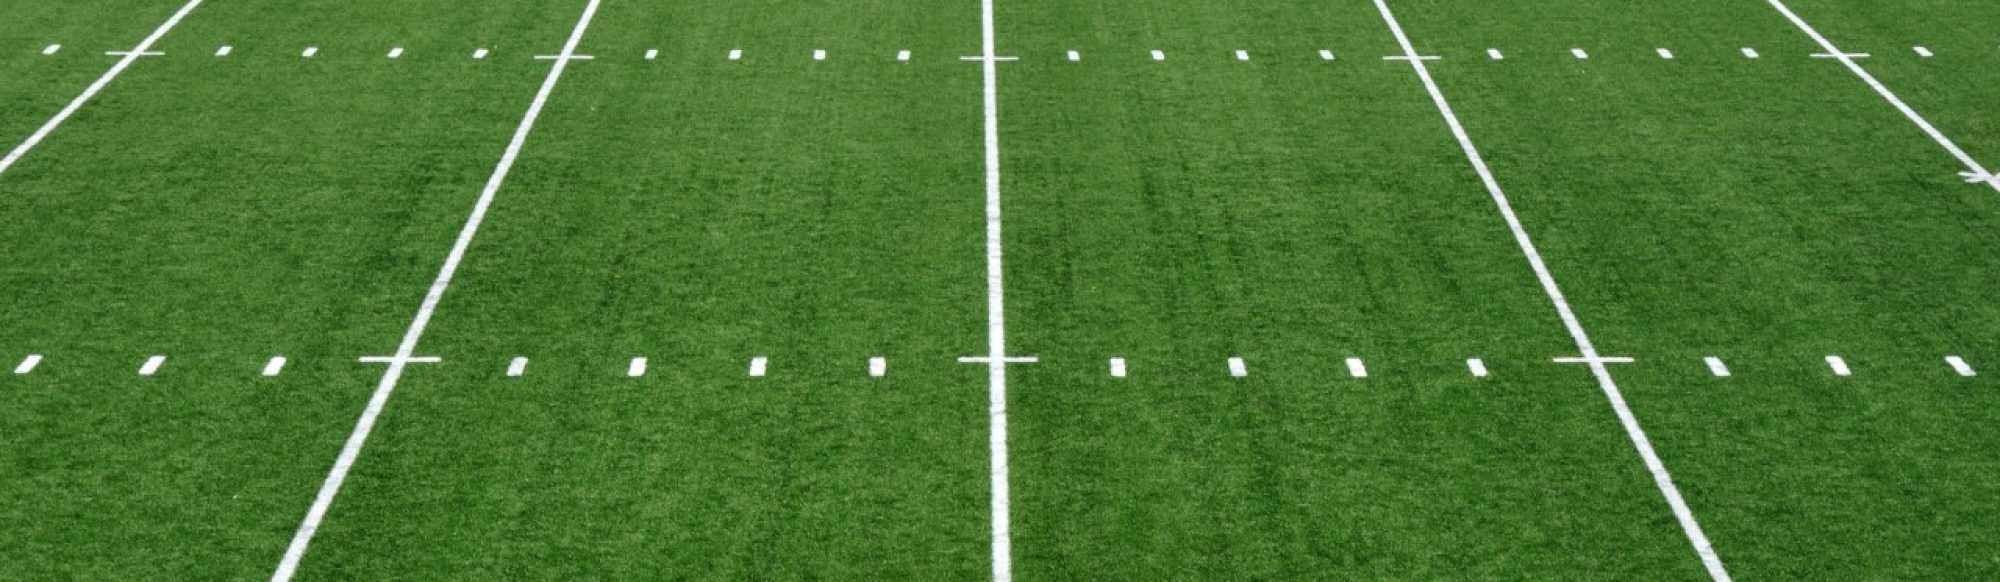 The Football Field Clipart to download free.